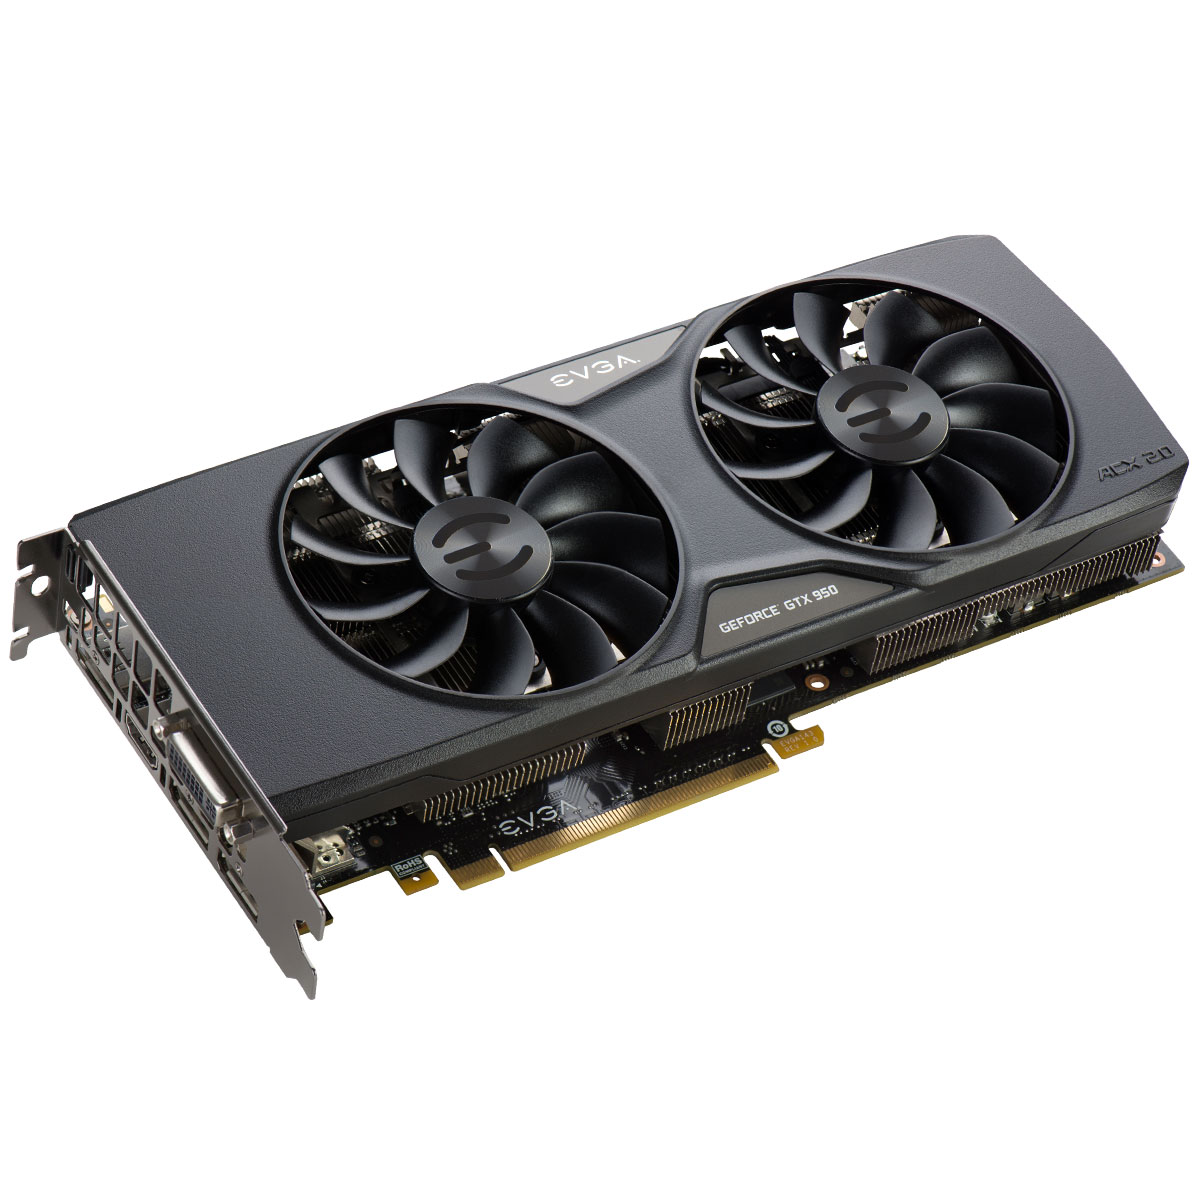 EVGA 02G P4 2957 KR NVIDIA GEFORCE GTX 950 SSC GAMING ACX 2.0 2GB GDDR5 PCI-E 3.0 16x VIDEO CARD.